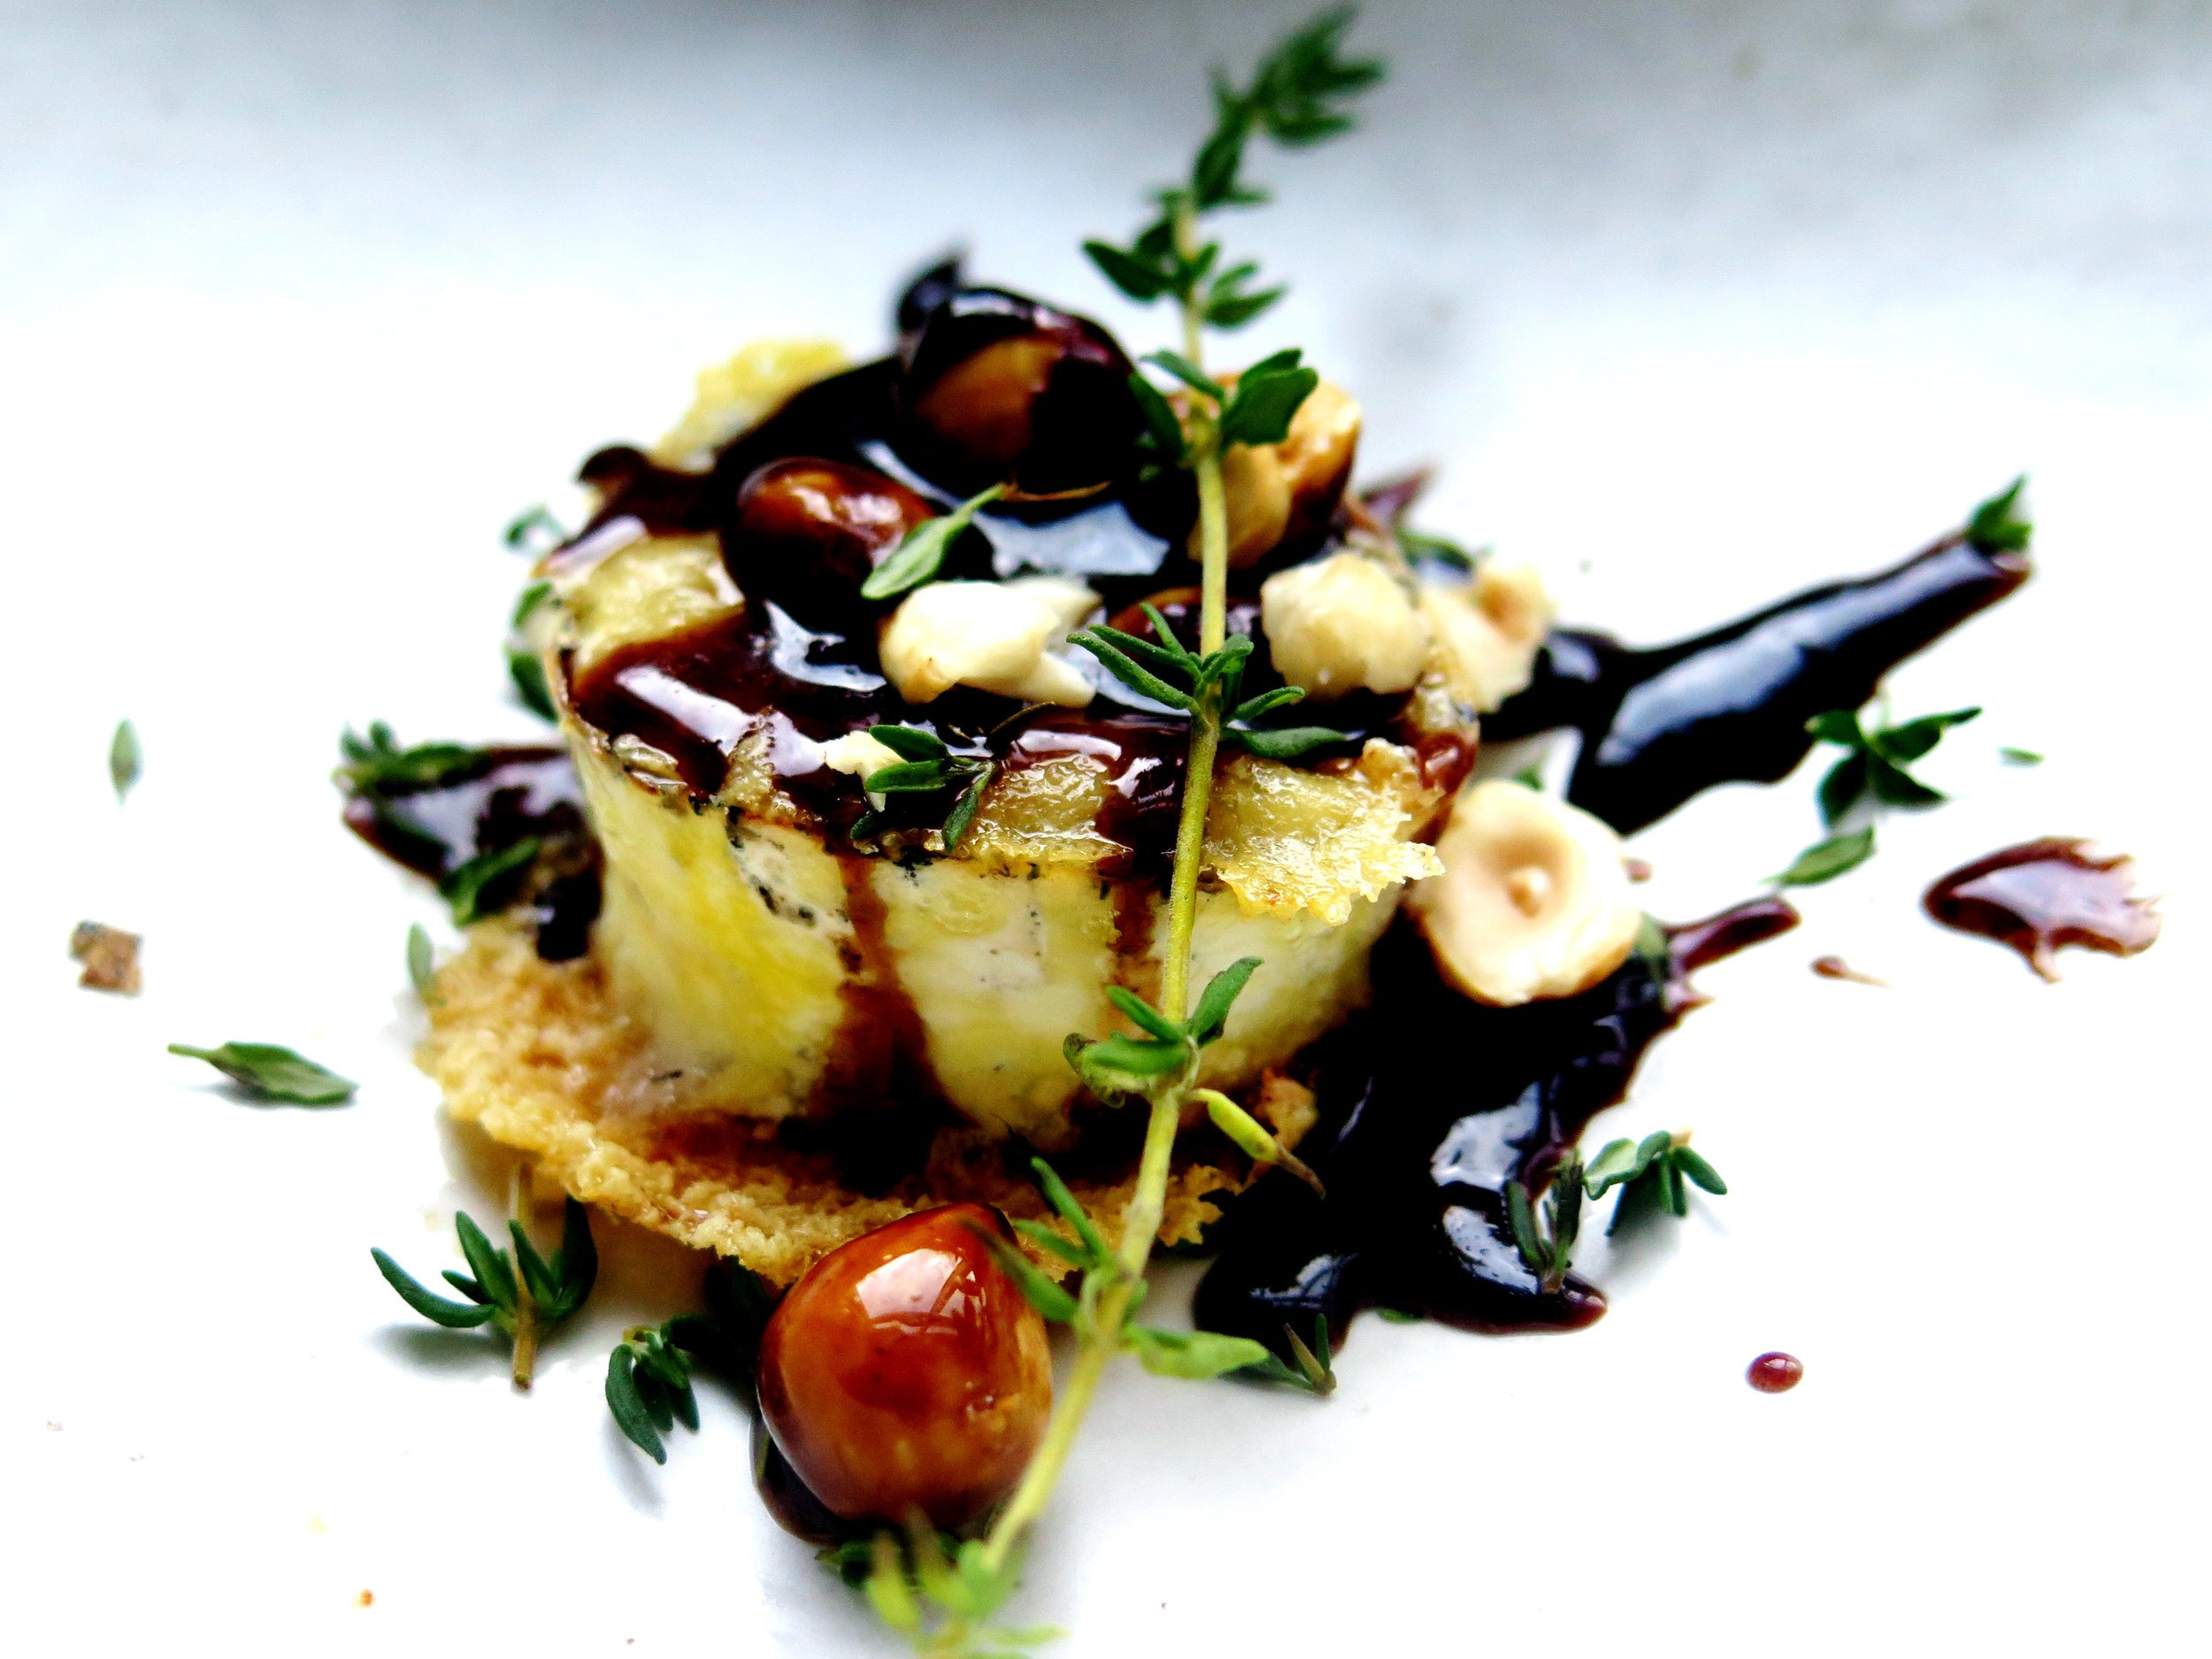 Crispy molten goat's cheese with caramelised, thyme-infused maple balsamic and toasted hazelnuts